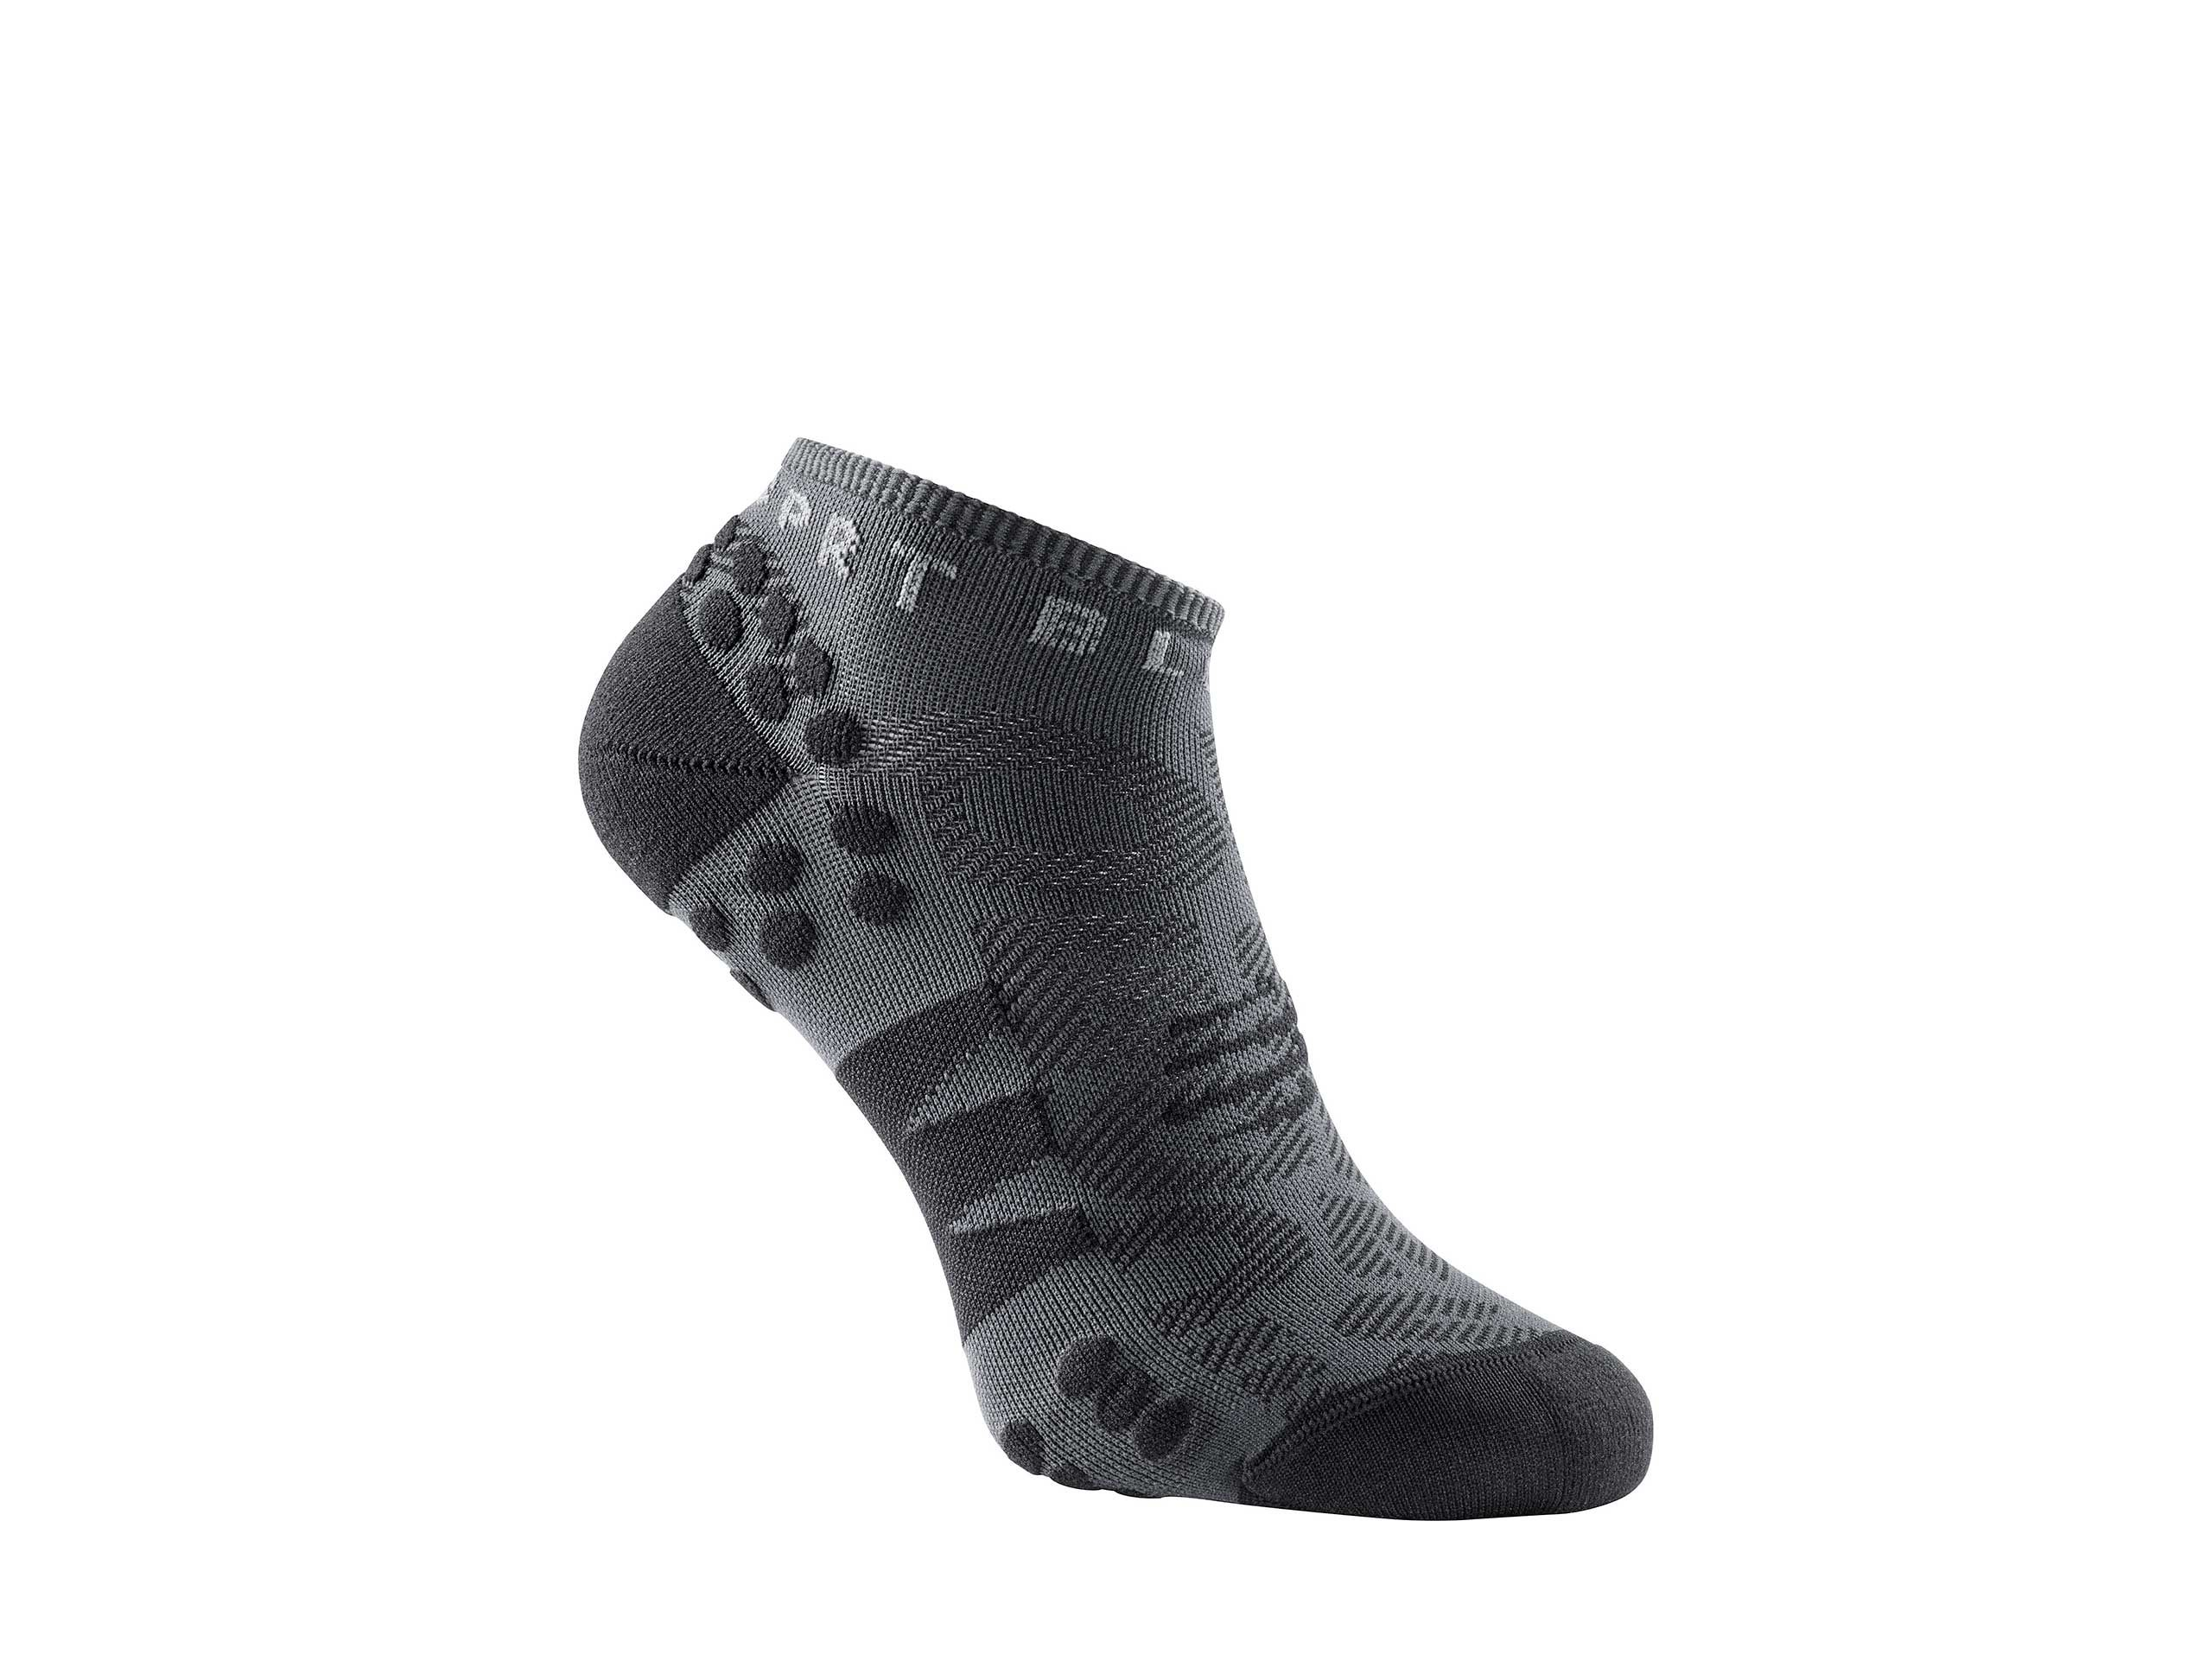 Pro Racing Socks v3.0 Run Low - Black Edition 2020